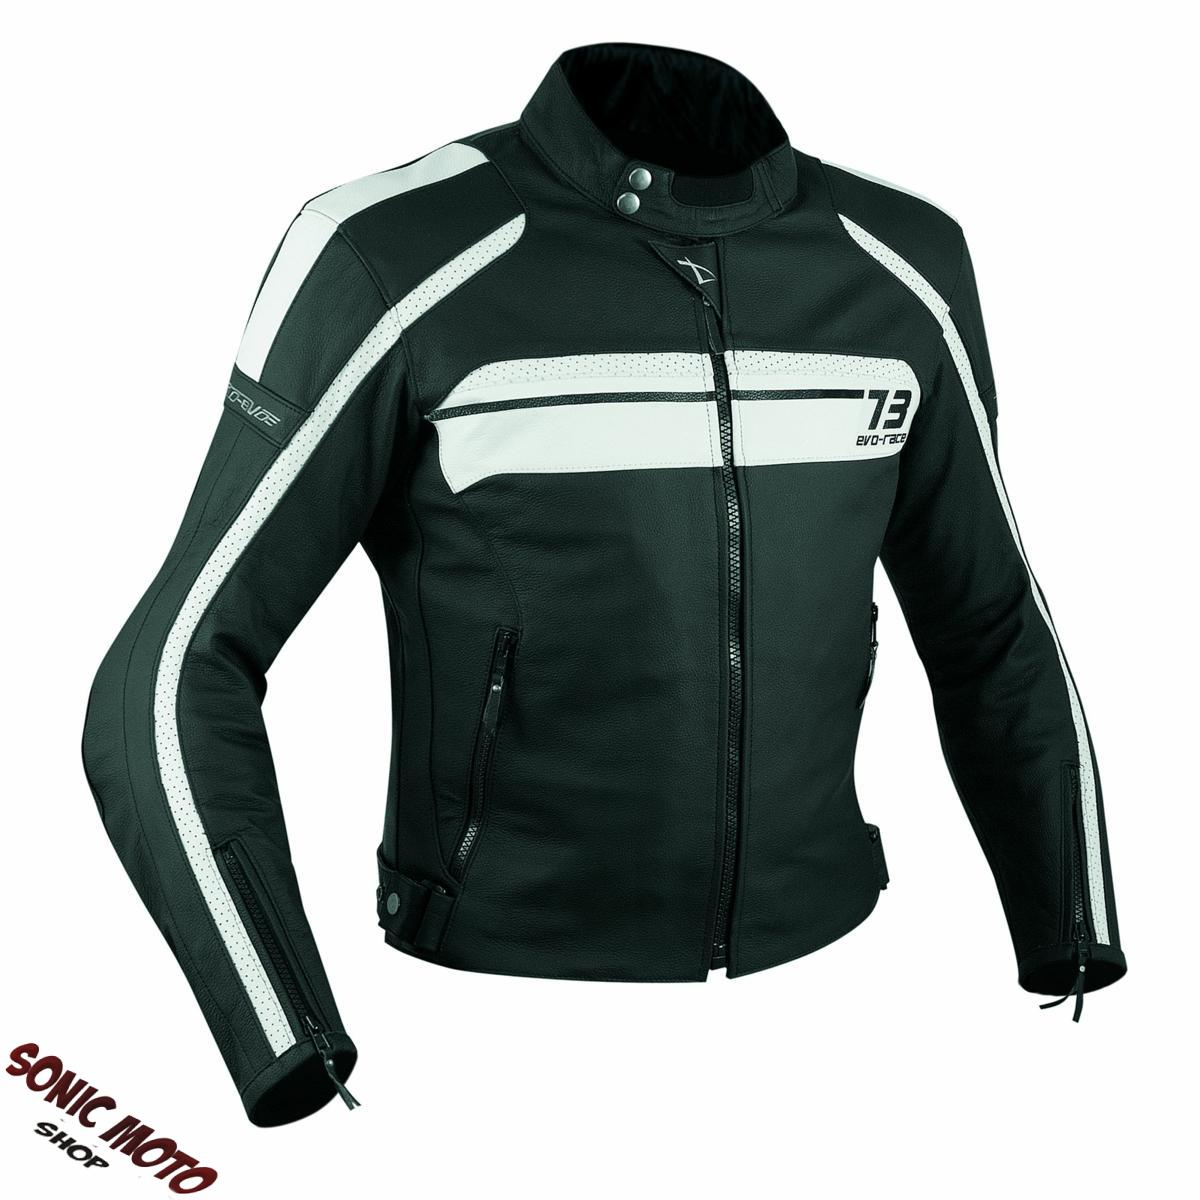 blouson cuir thermique moto motard sport touring protections homologu es ebay. Black Bedroom Furniture Sets. Home Design Ideas